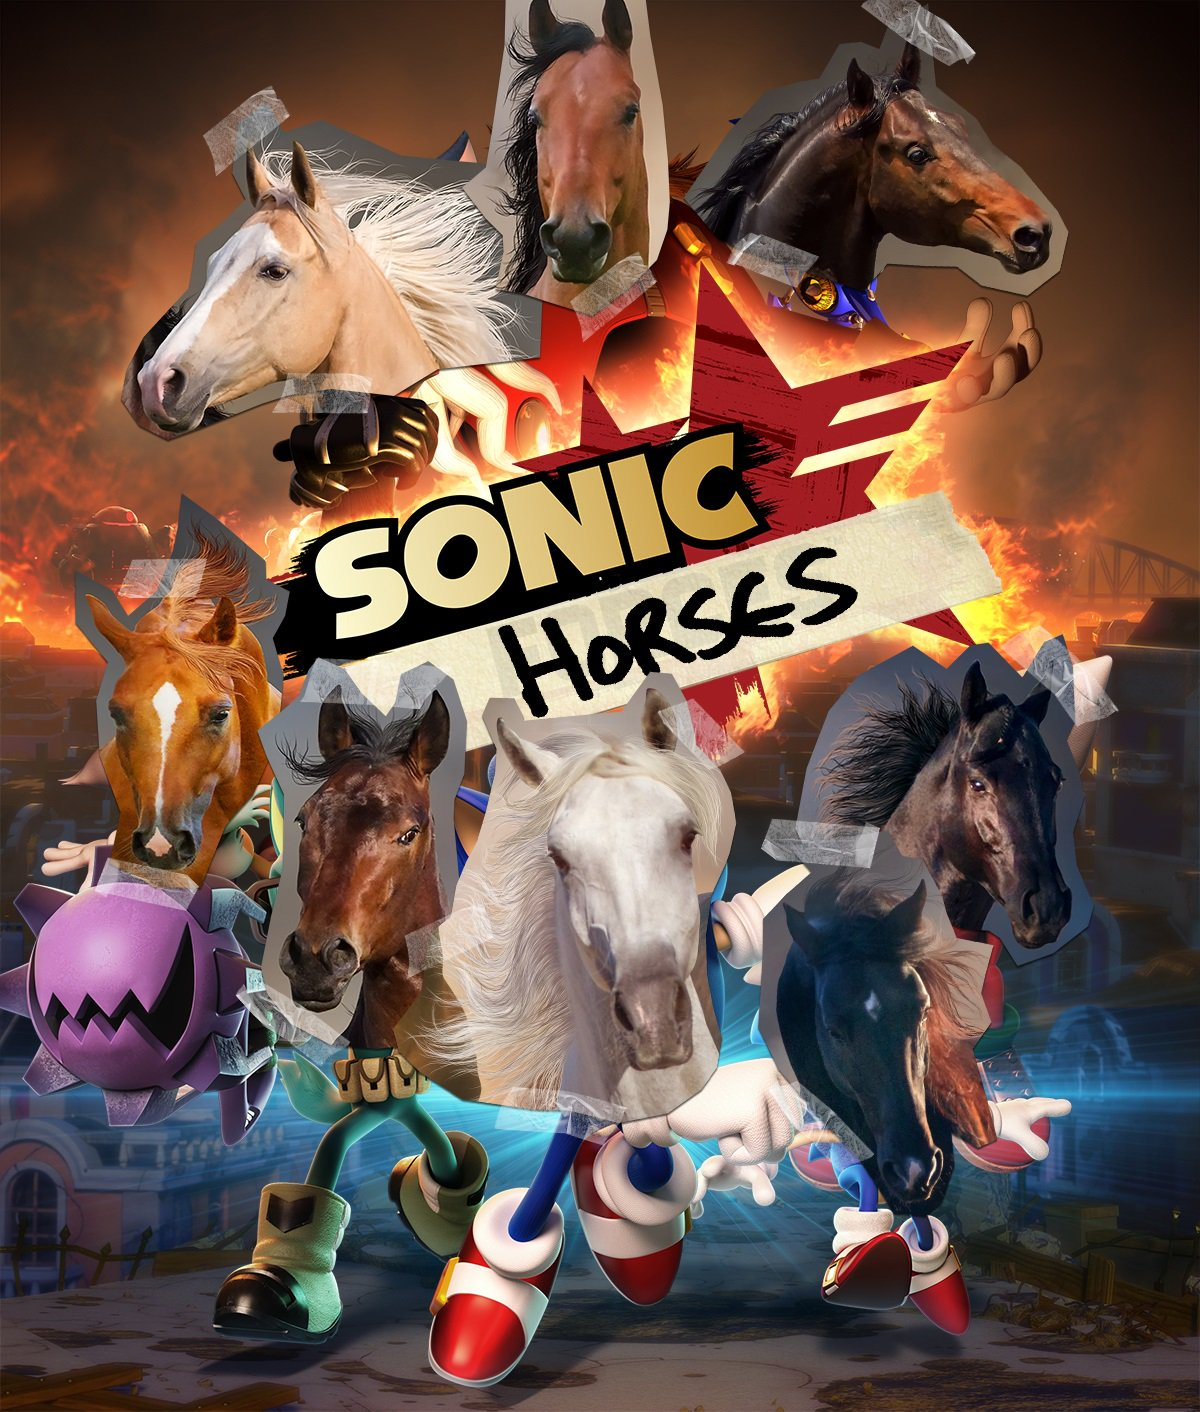 Presenting the new hit sequel to Sonic Forces: https://t.co/WQm3NMN5Sj